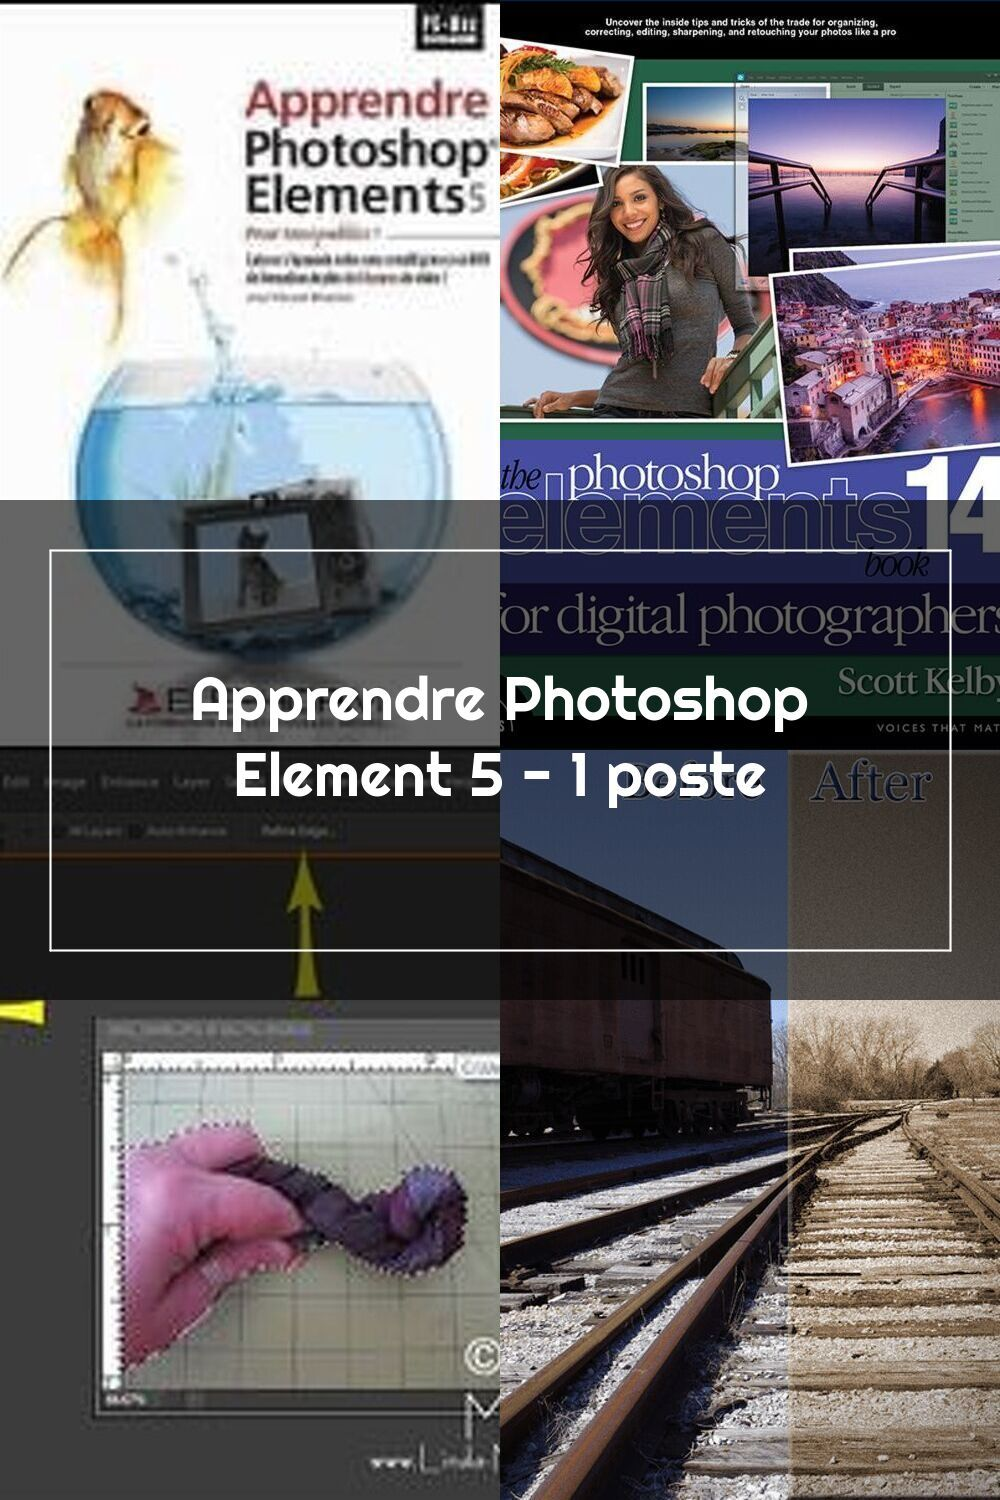 Apprendre Photoshop Element 5 1 Poste In 2020 Photoshop Elements Photoshop Digital Photographers